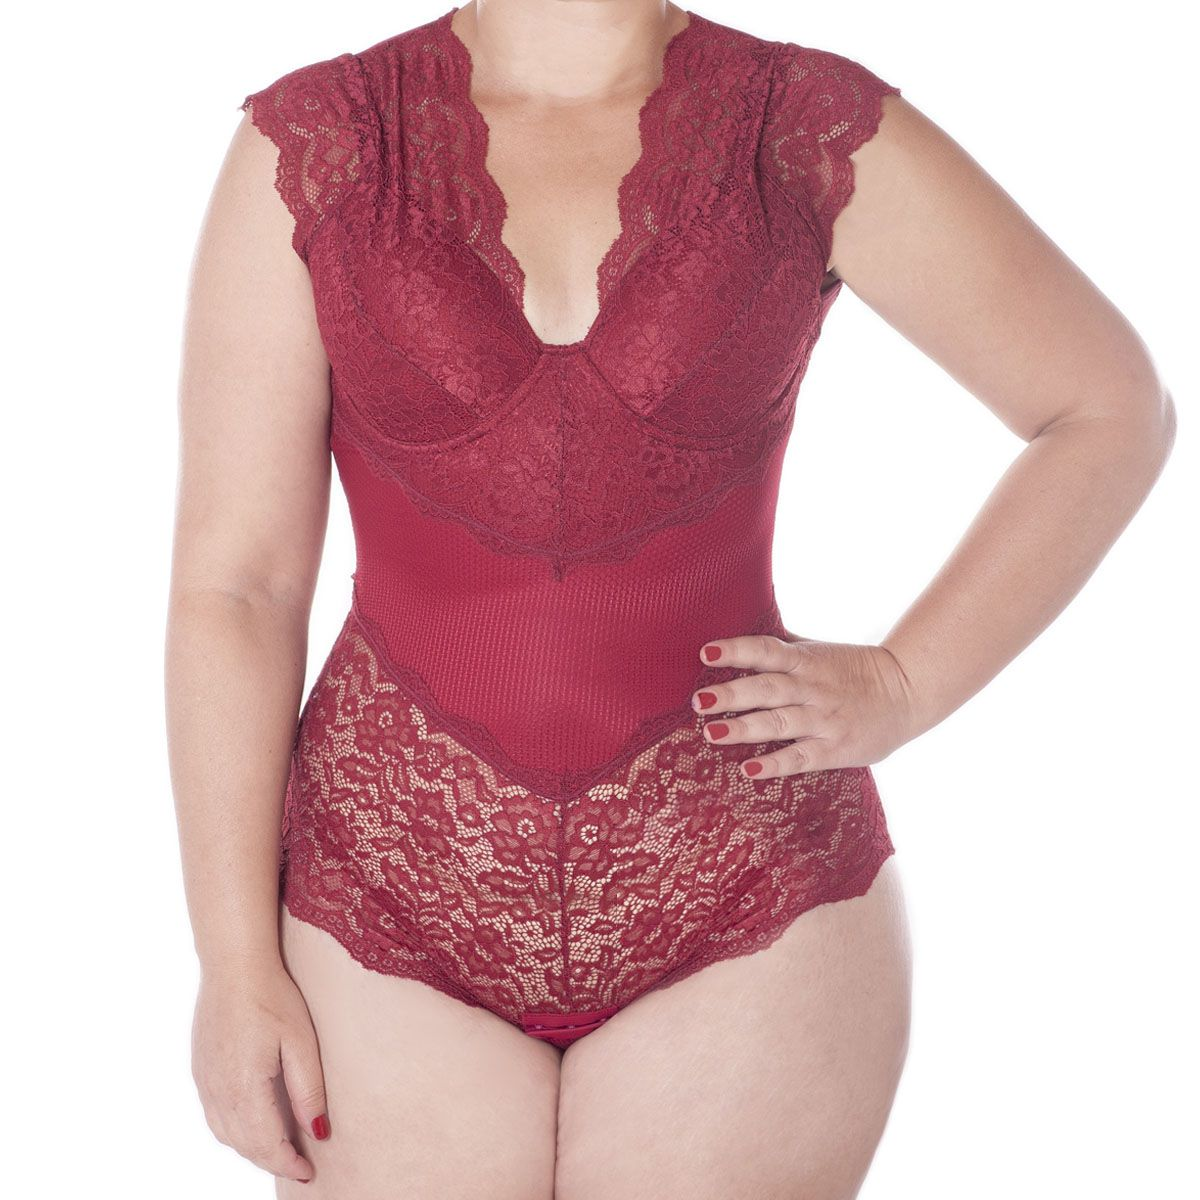 Body Plus Size Rendado Bojo Copa C Liebe